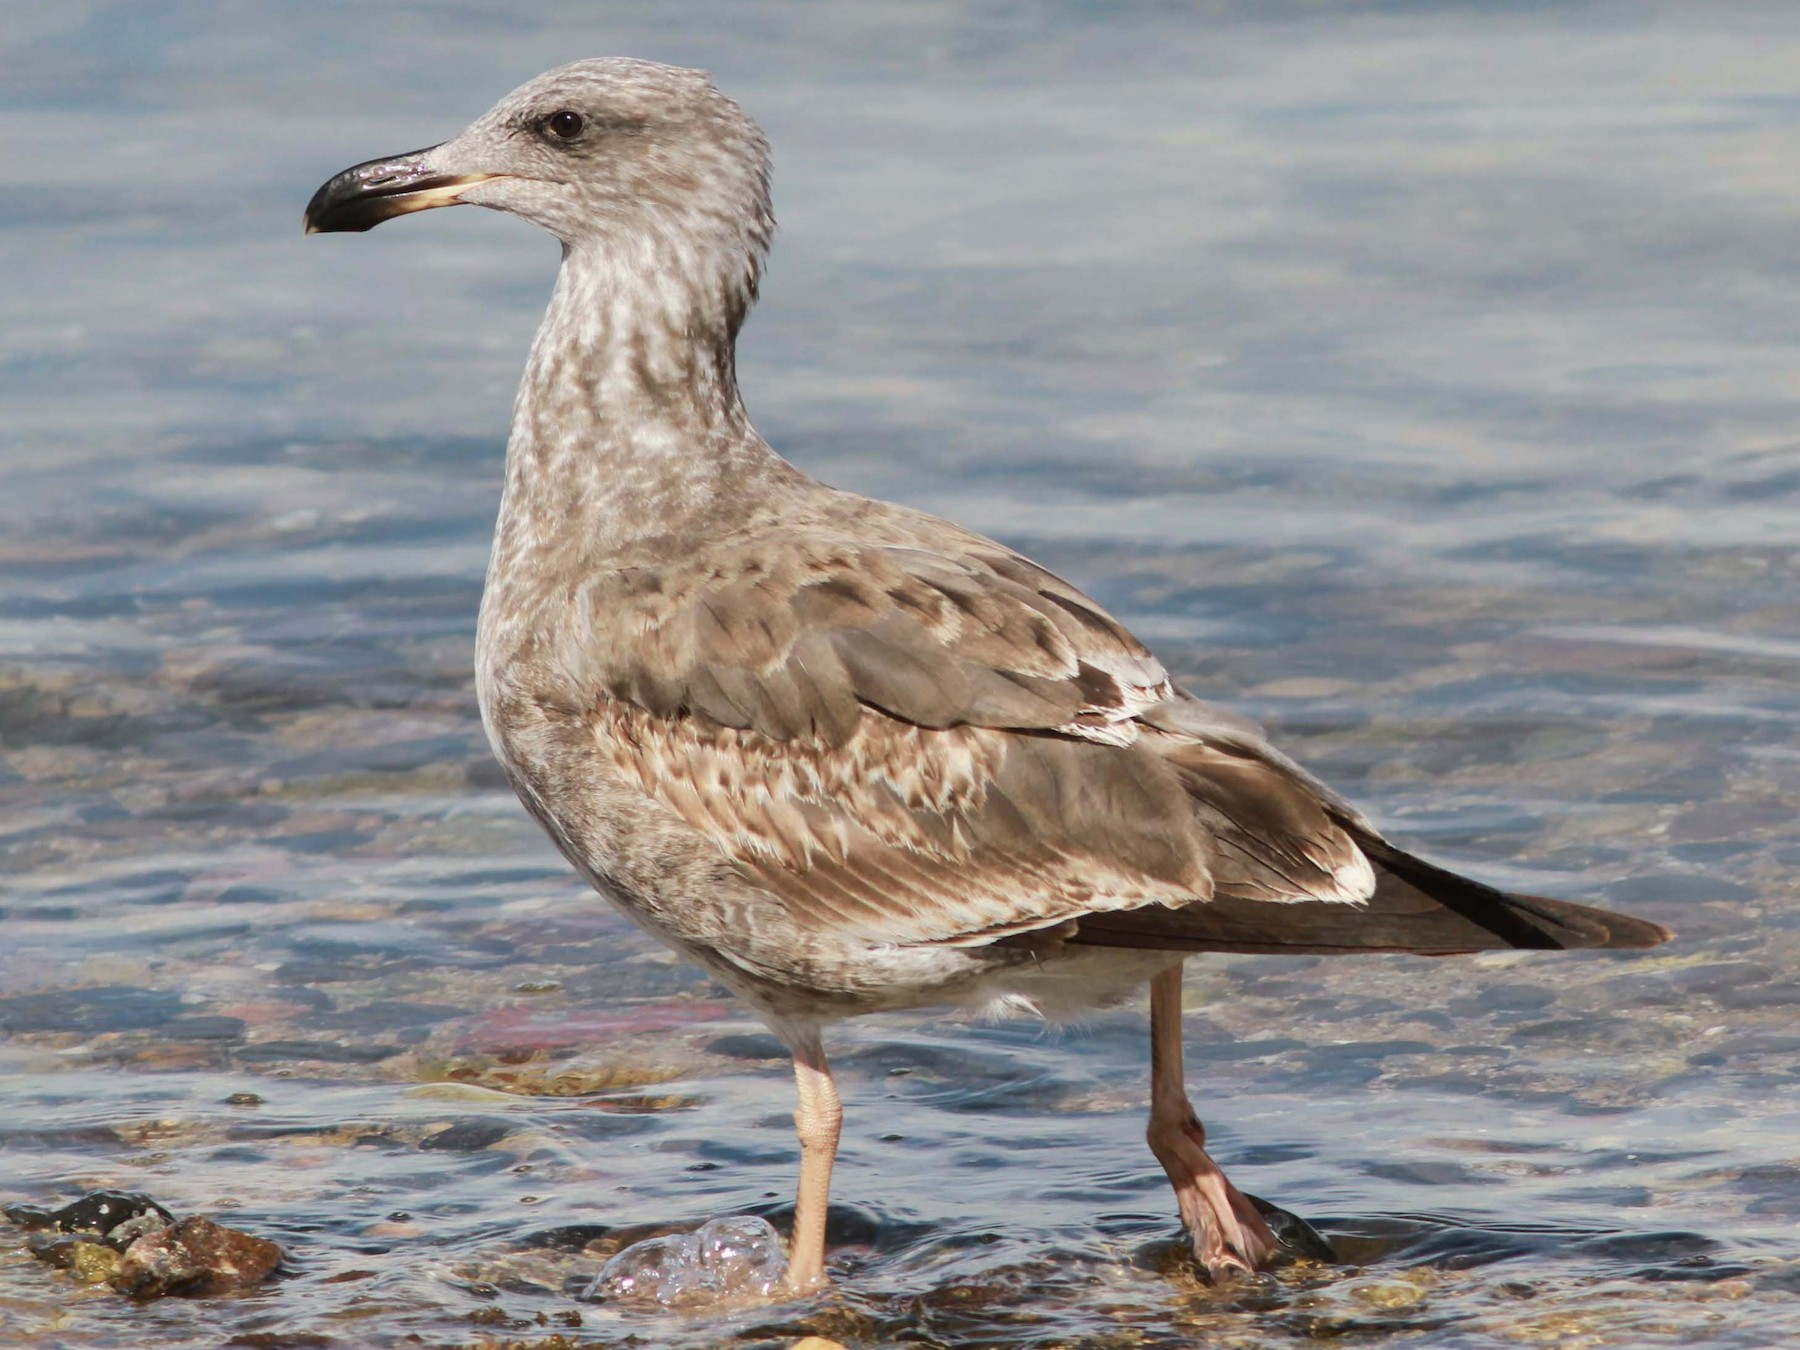 Yellow-footed Gull - David Vander Pluym